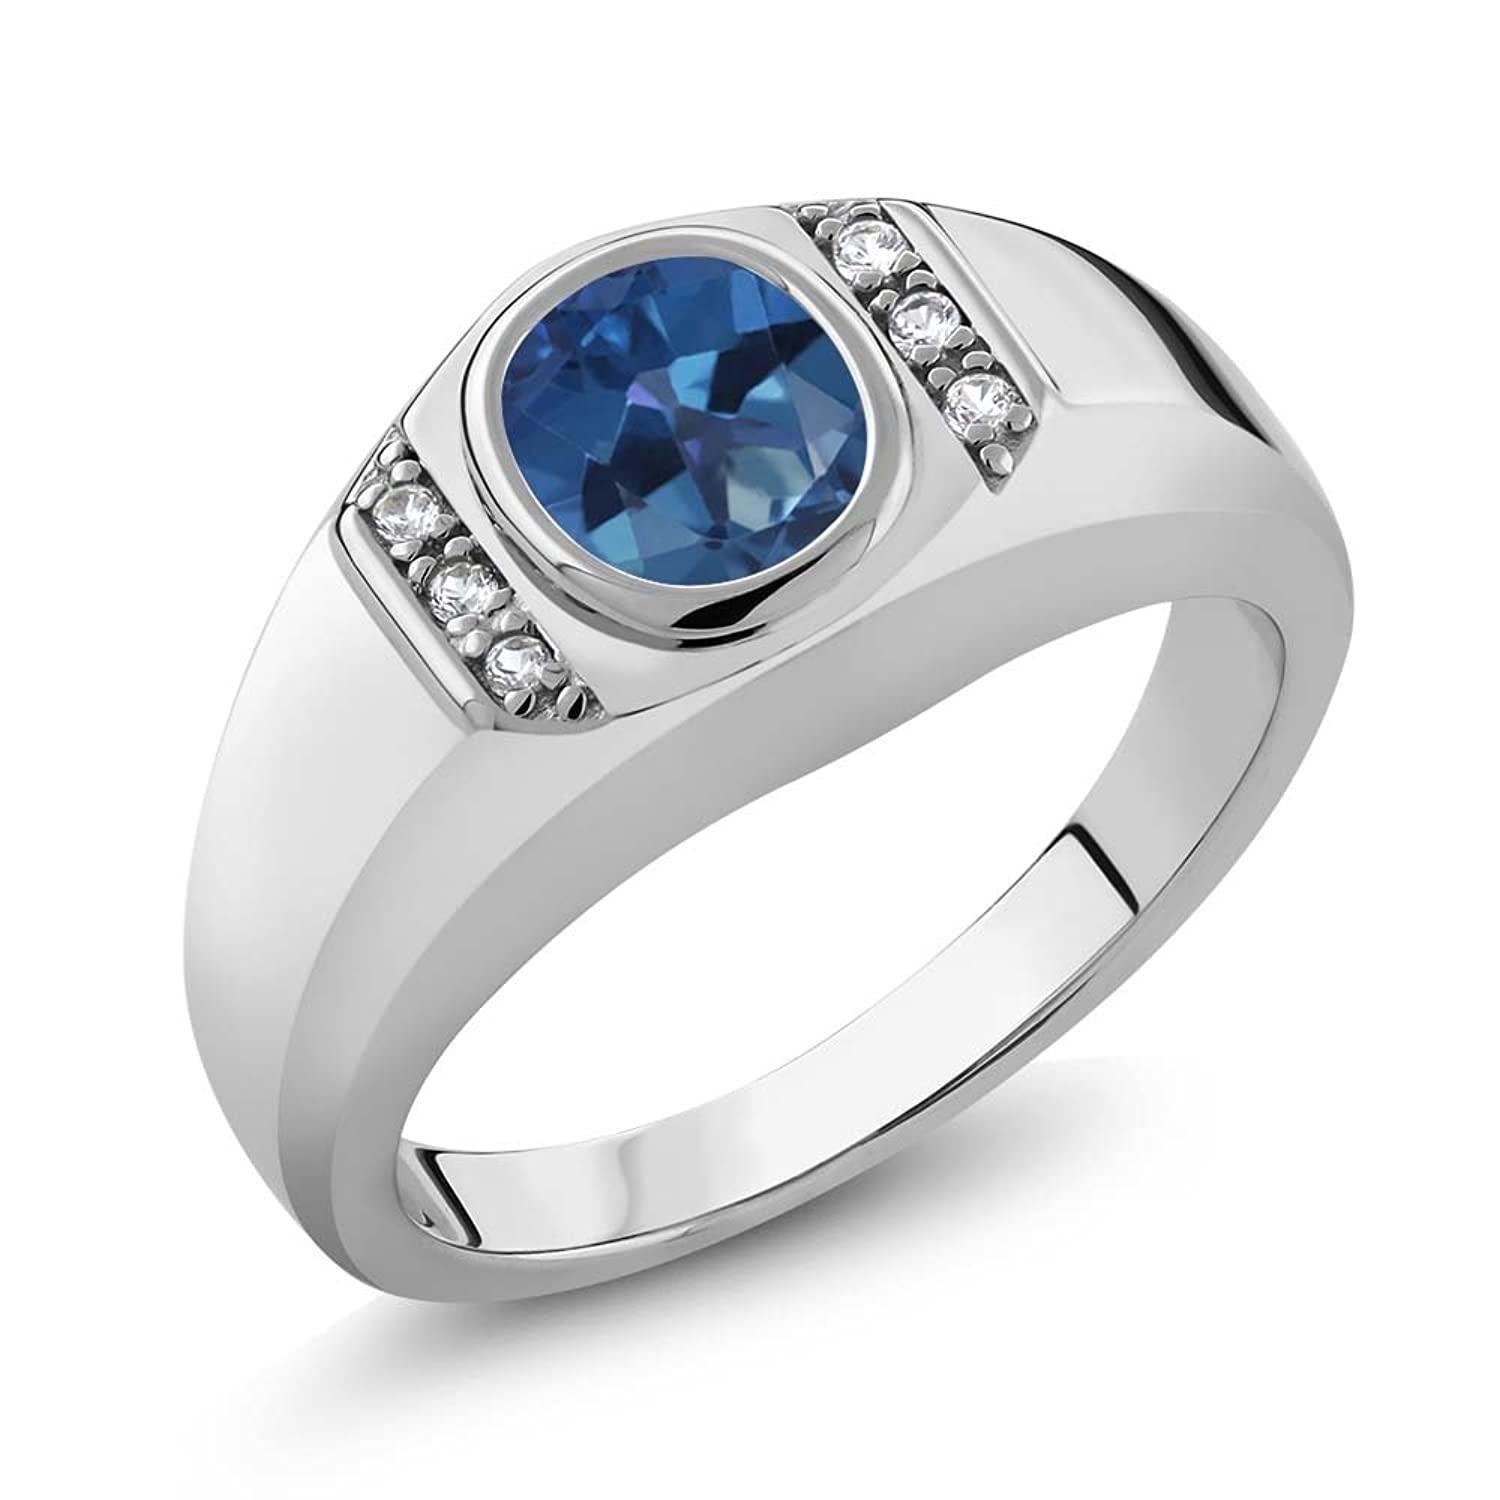 1.36 Ct Royal Blue Mystic Topaz White Created Sapphire 925 Silver Men's Ring